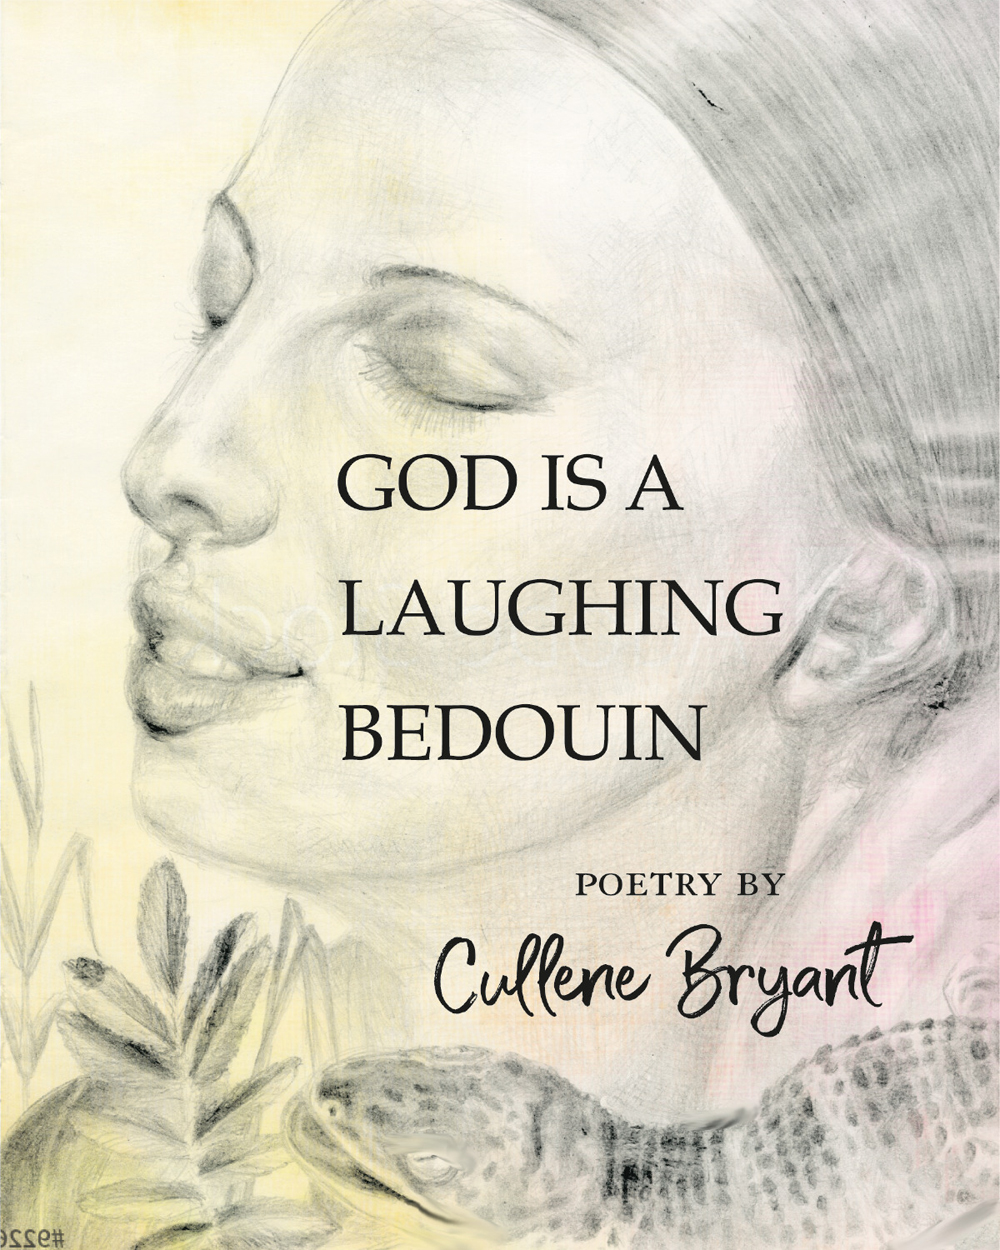 God is a Laughing Bedouin